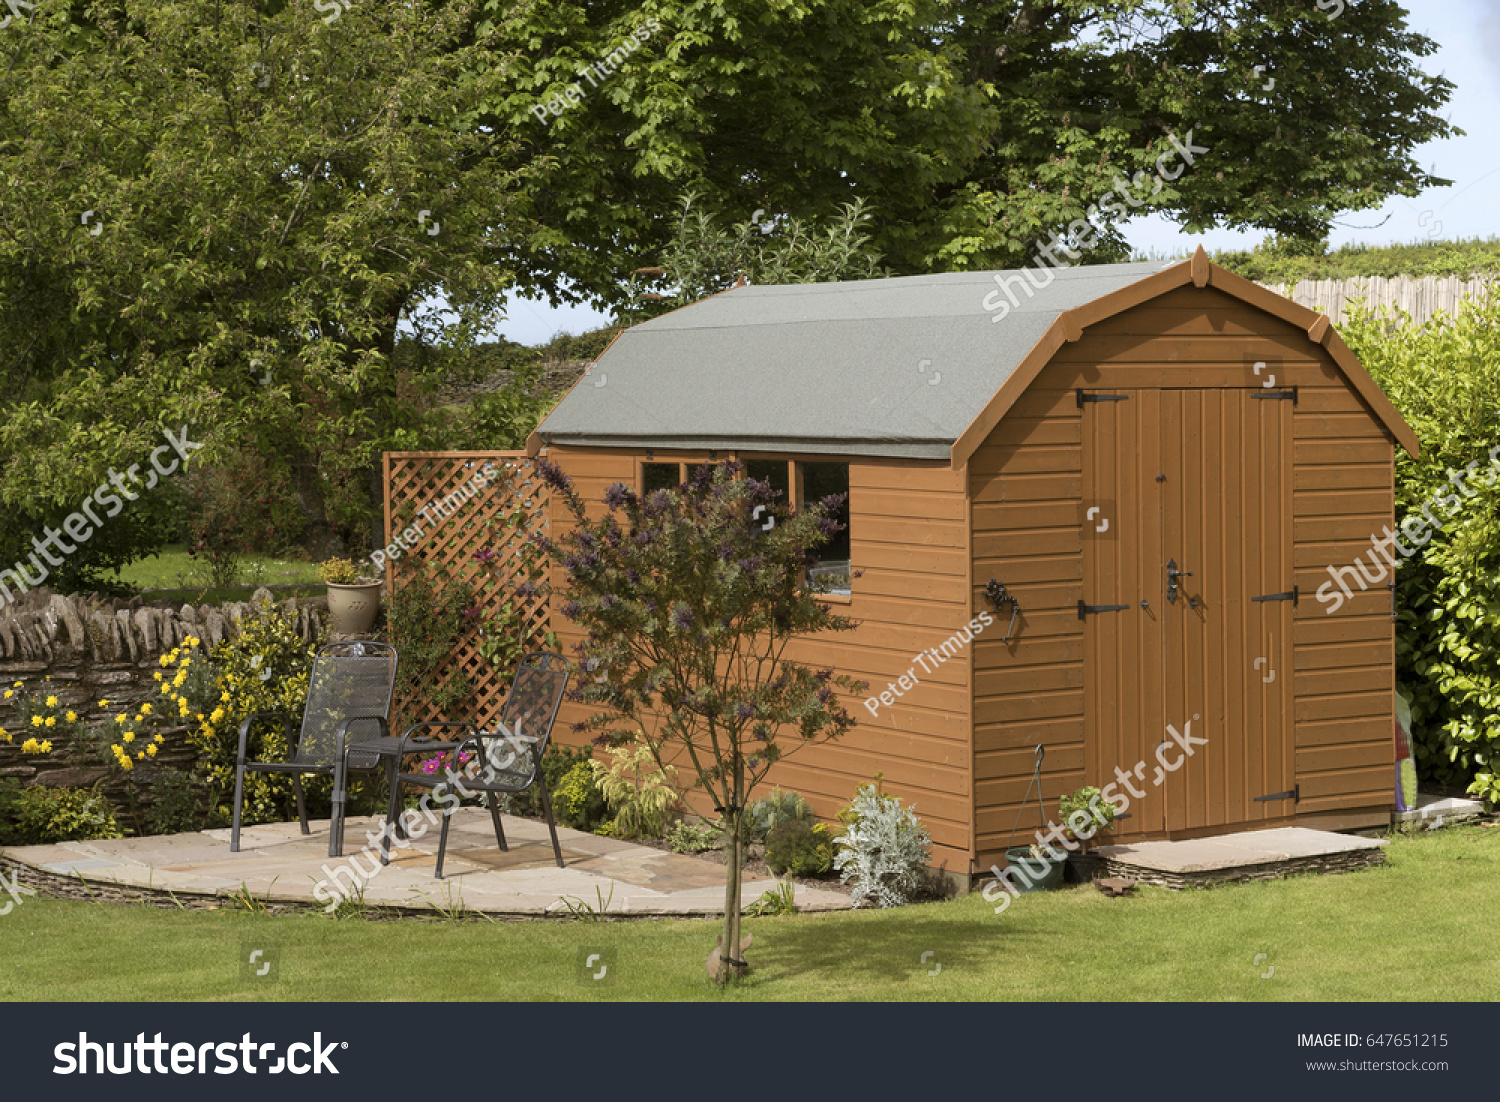 Dutch Barn Style Garden Shed Patio Stock Photo (Edit Now) 647651215 ...